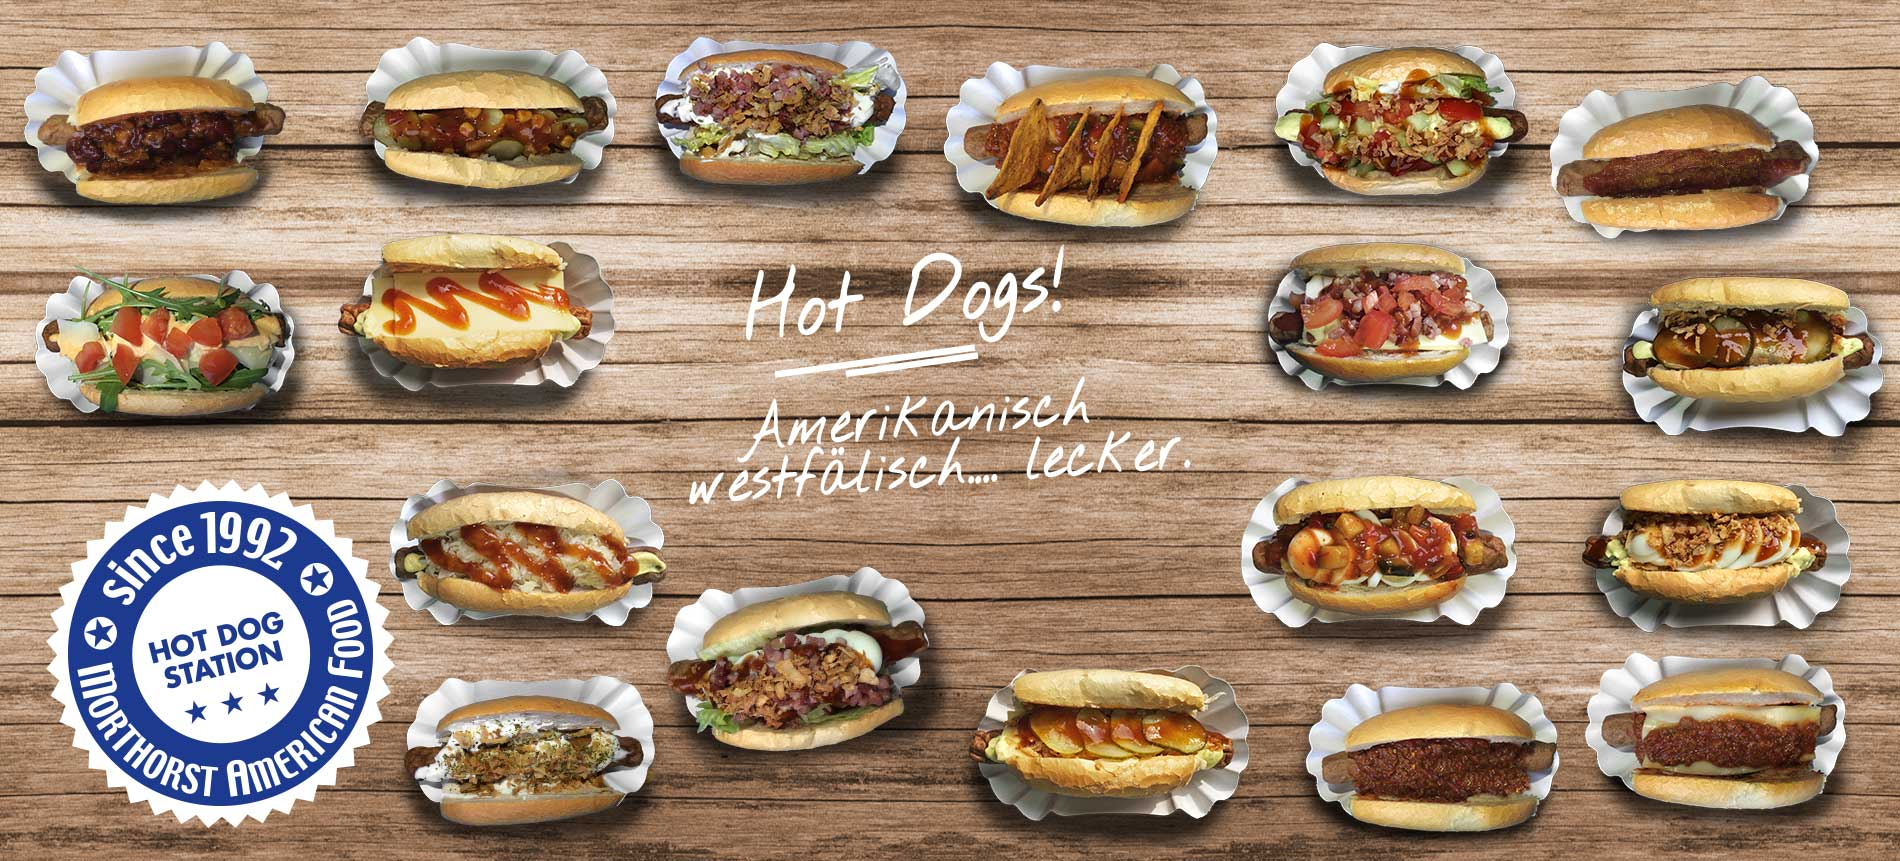 Hot Dog Station Hot Dogs